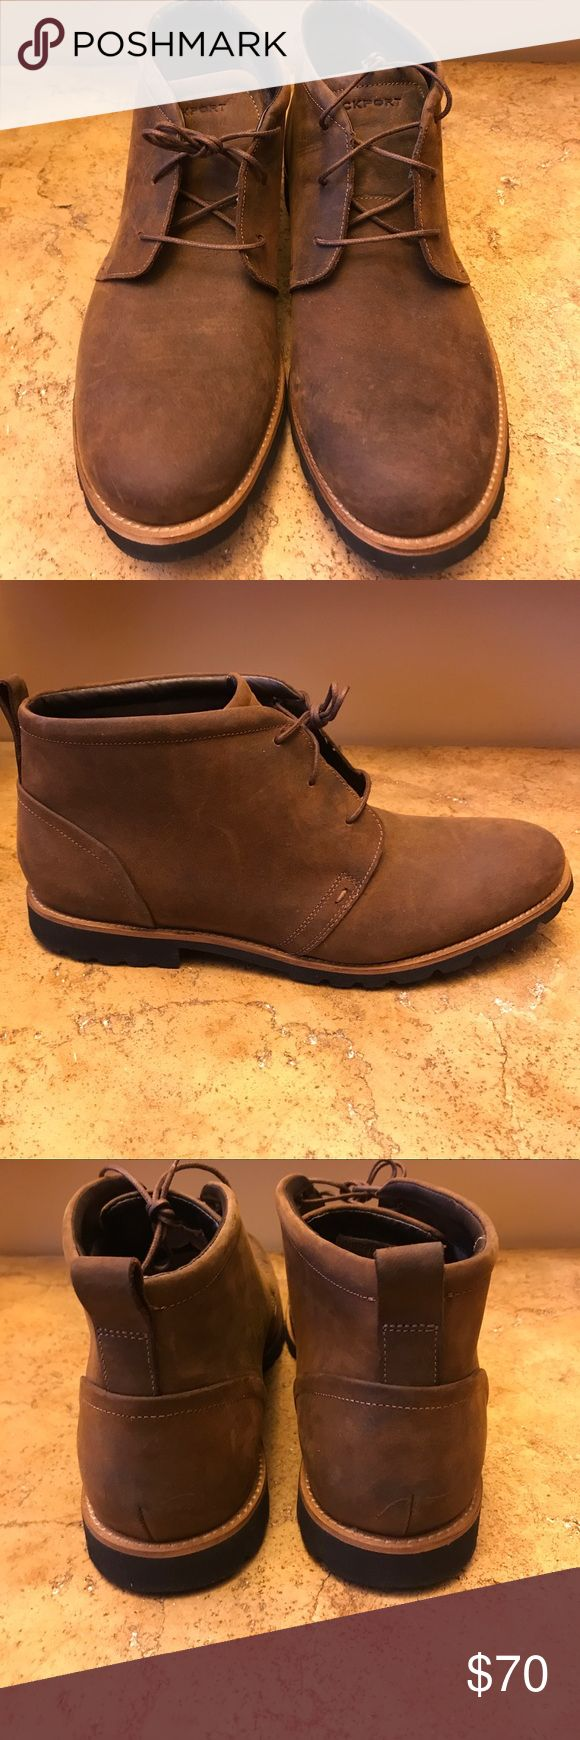 Rockport ankle boots Nwob Rockport Shoes Chukka Boots